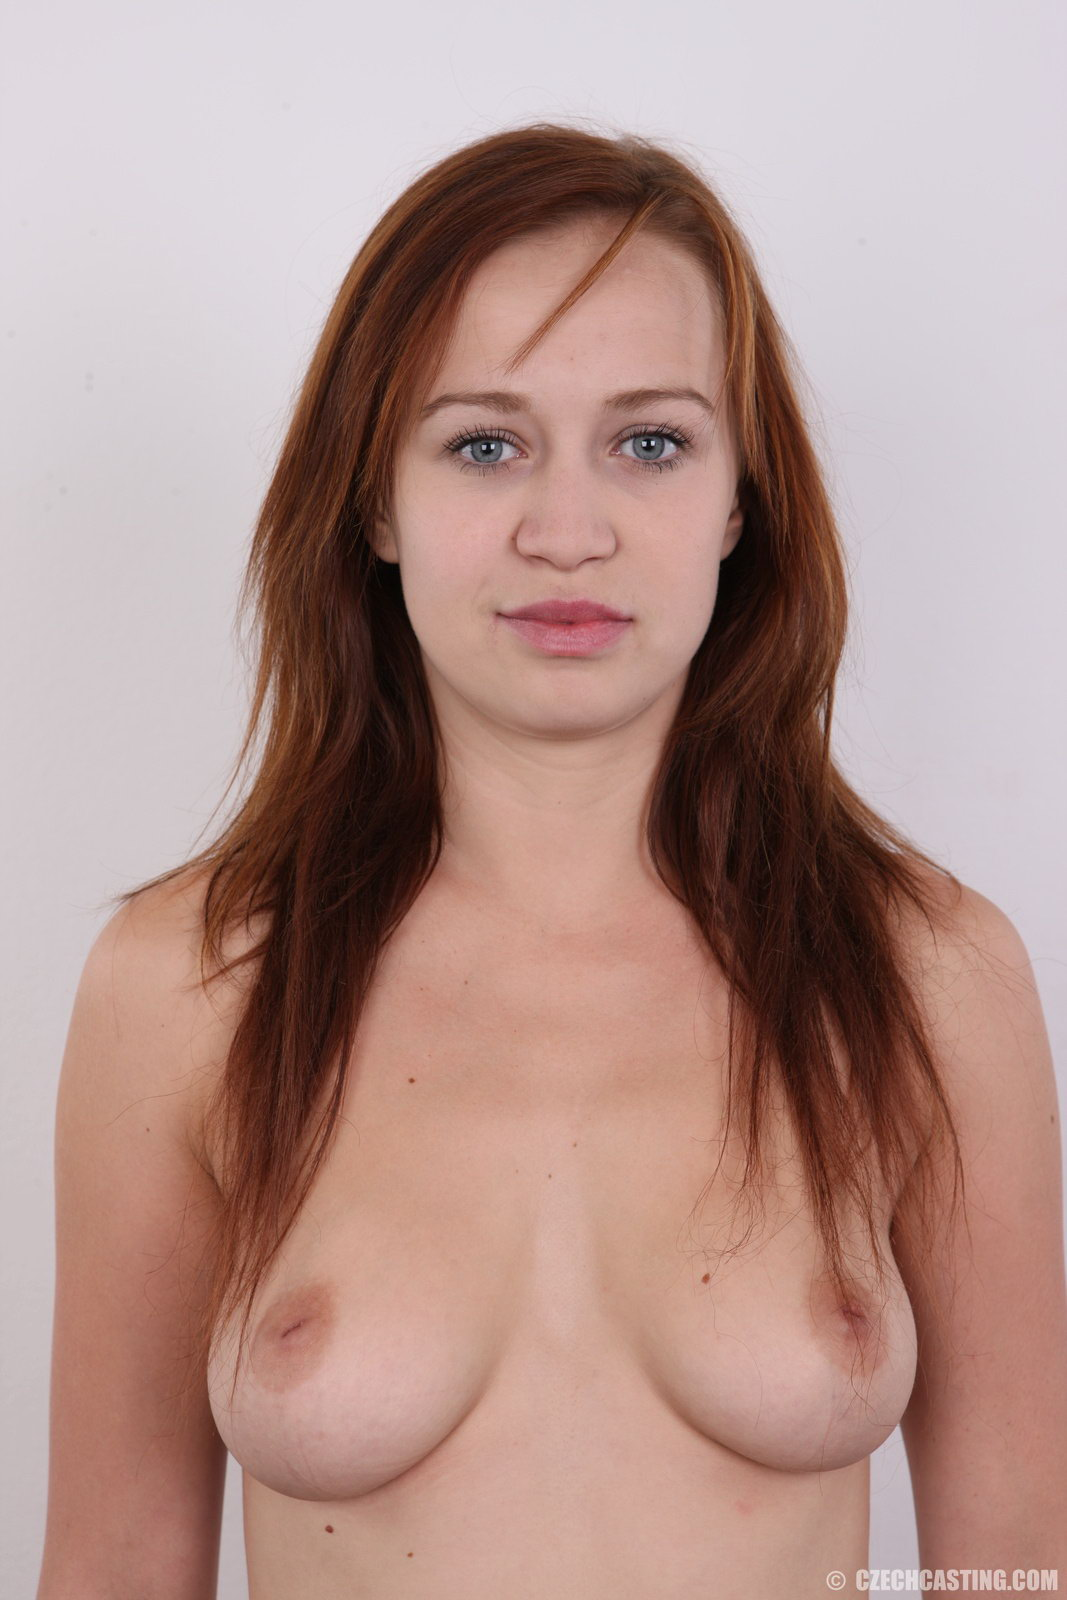 Casting girls czech nude apologise, but